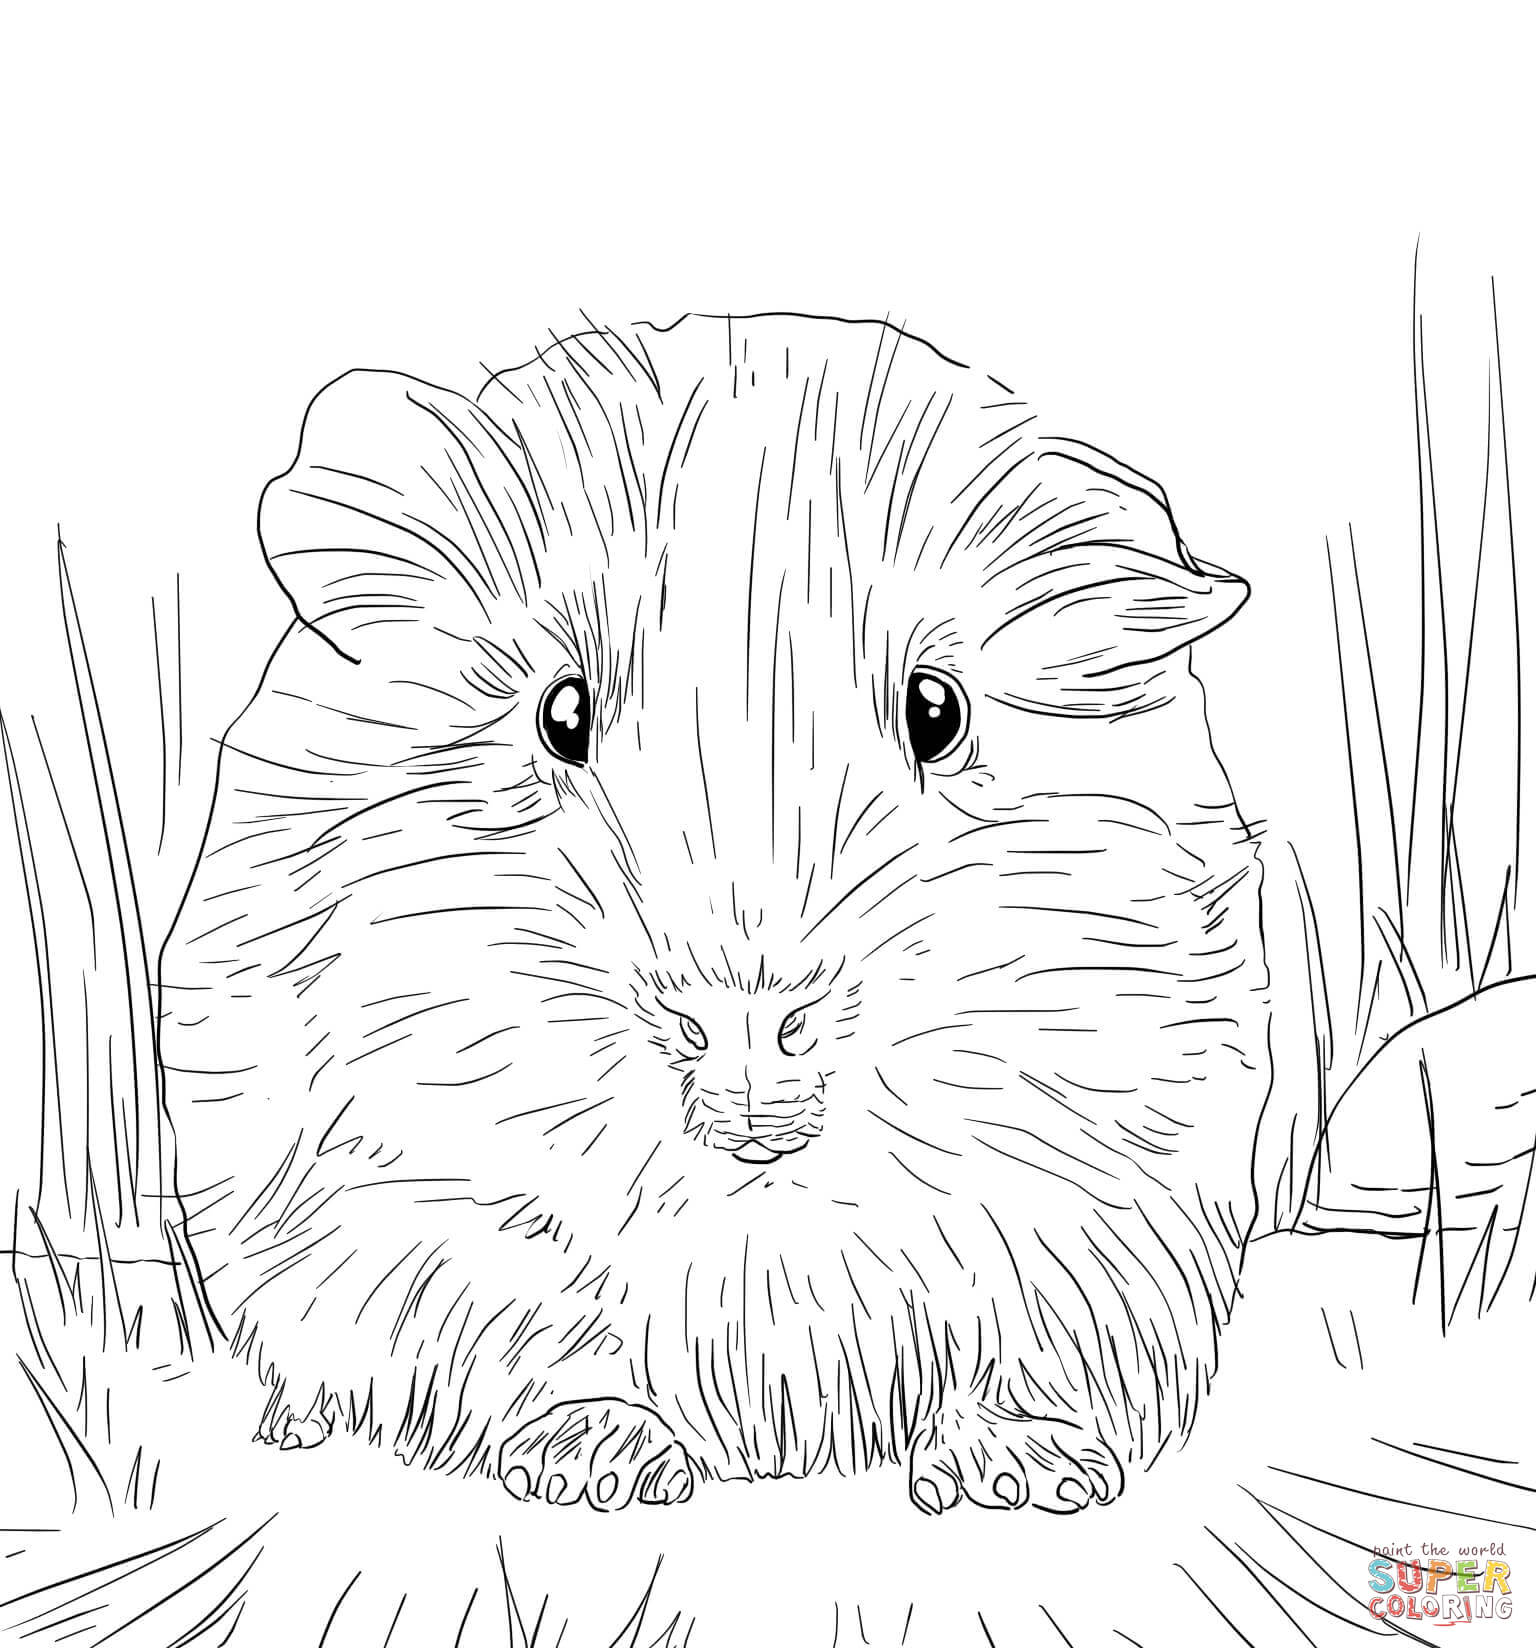 Printable coloring pages guinea pigs - Guinea Pig Coloring Pages Free Coloring Pages